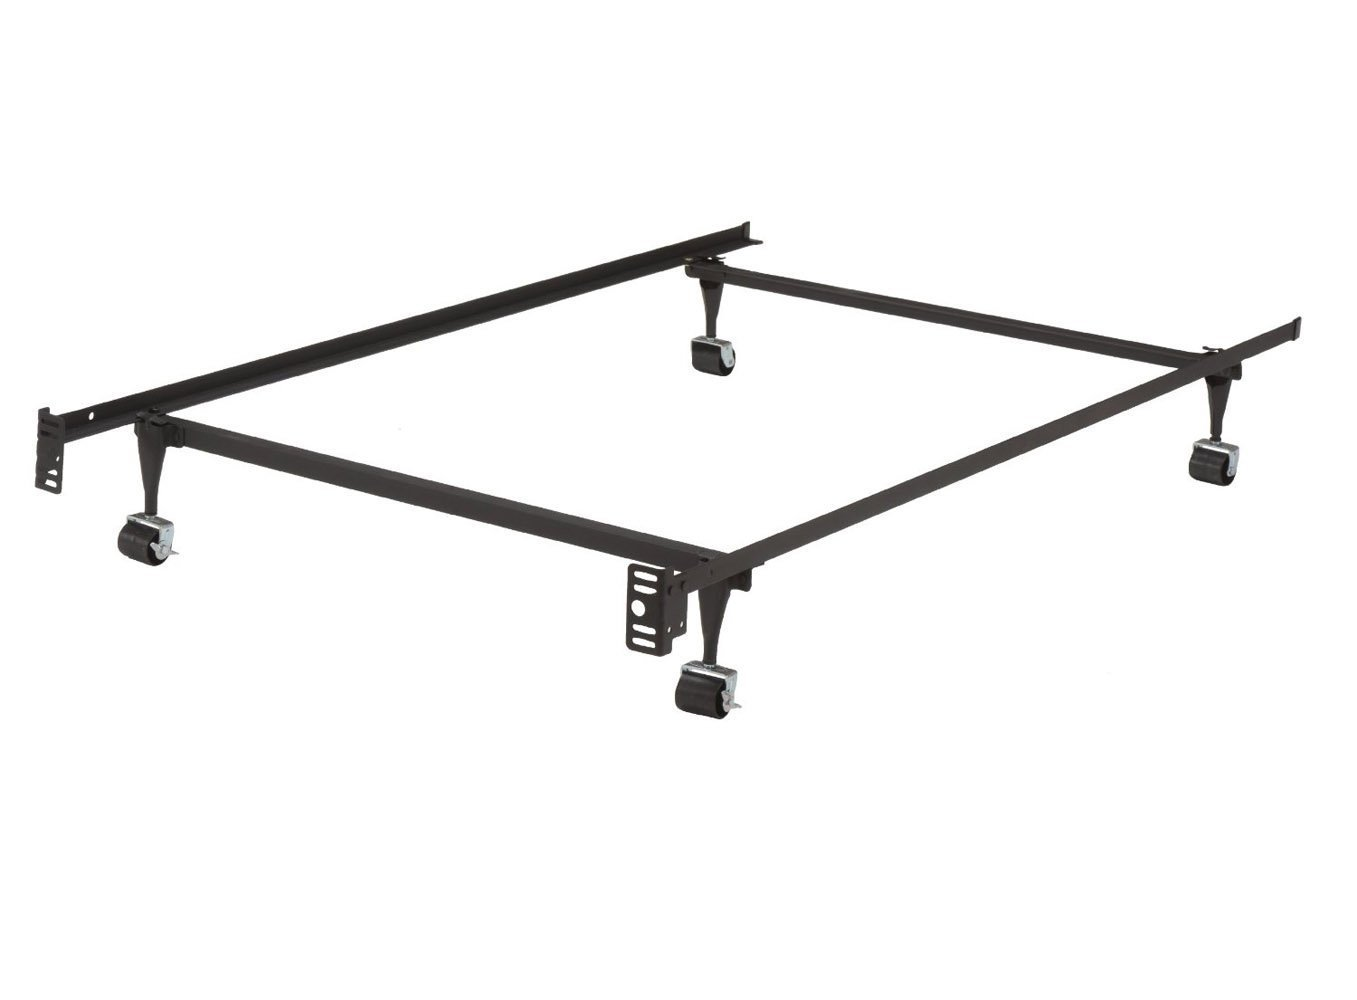 Top 10 Best Bed Frames (2020 Reviews & Buying Guide) 2